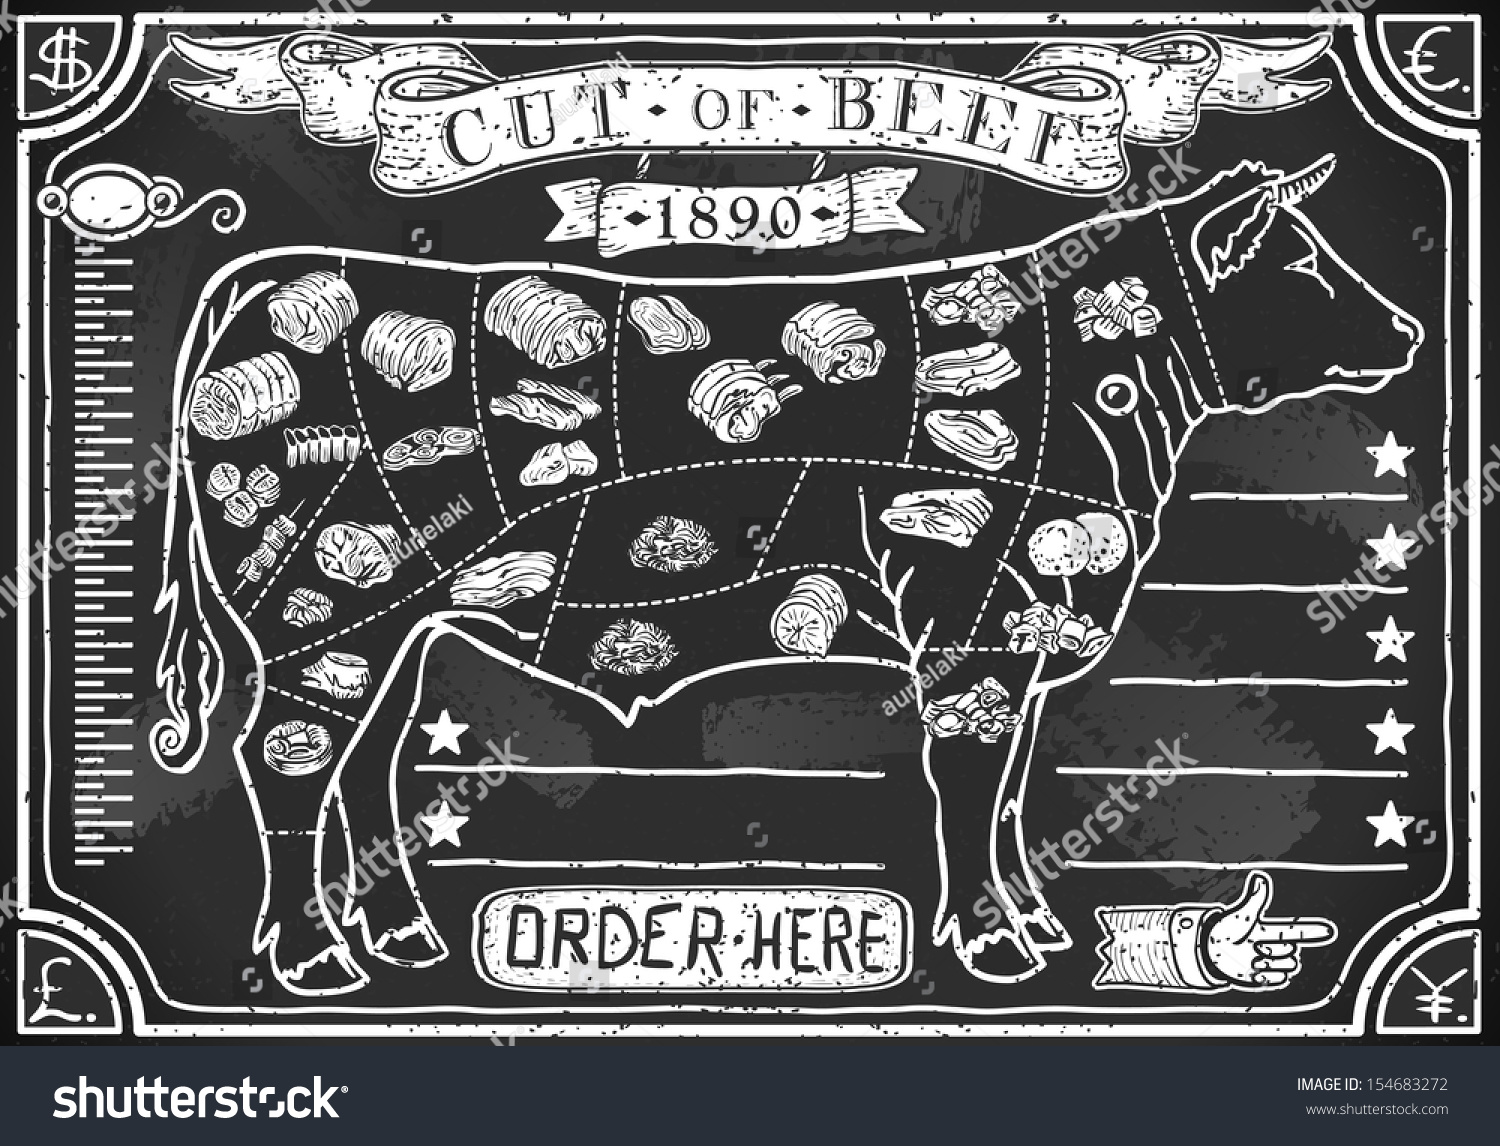 Vintage Butcher Blackboard Cut Beef Meat Stock Vector 154683272 ...